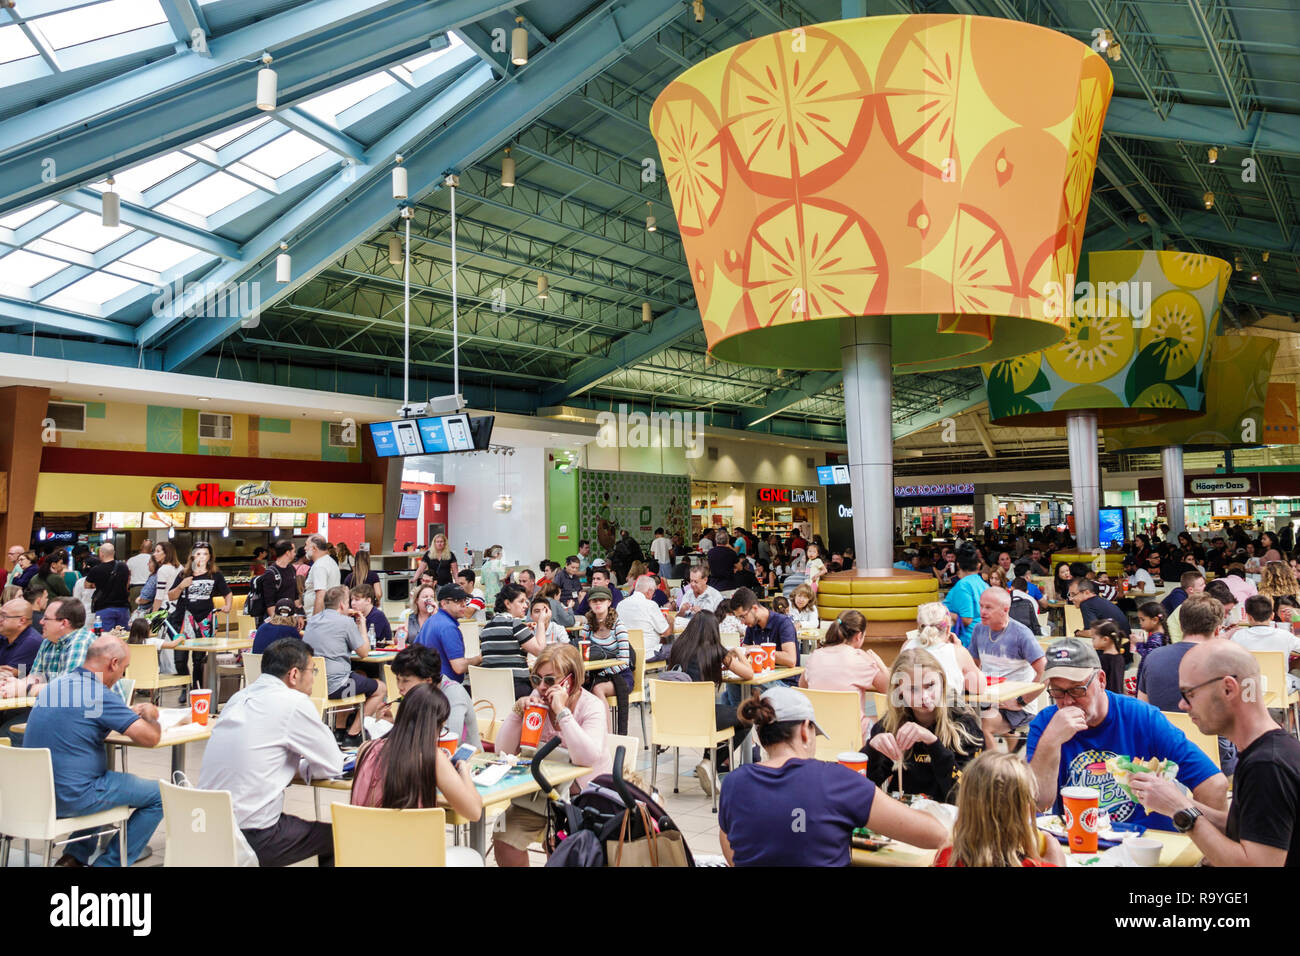 Fort Ft. Lauderdale Florida Sunrise Sawgrass Mills Mall shopping food court tables families restaurant - Stock Image